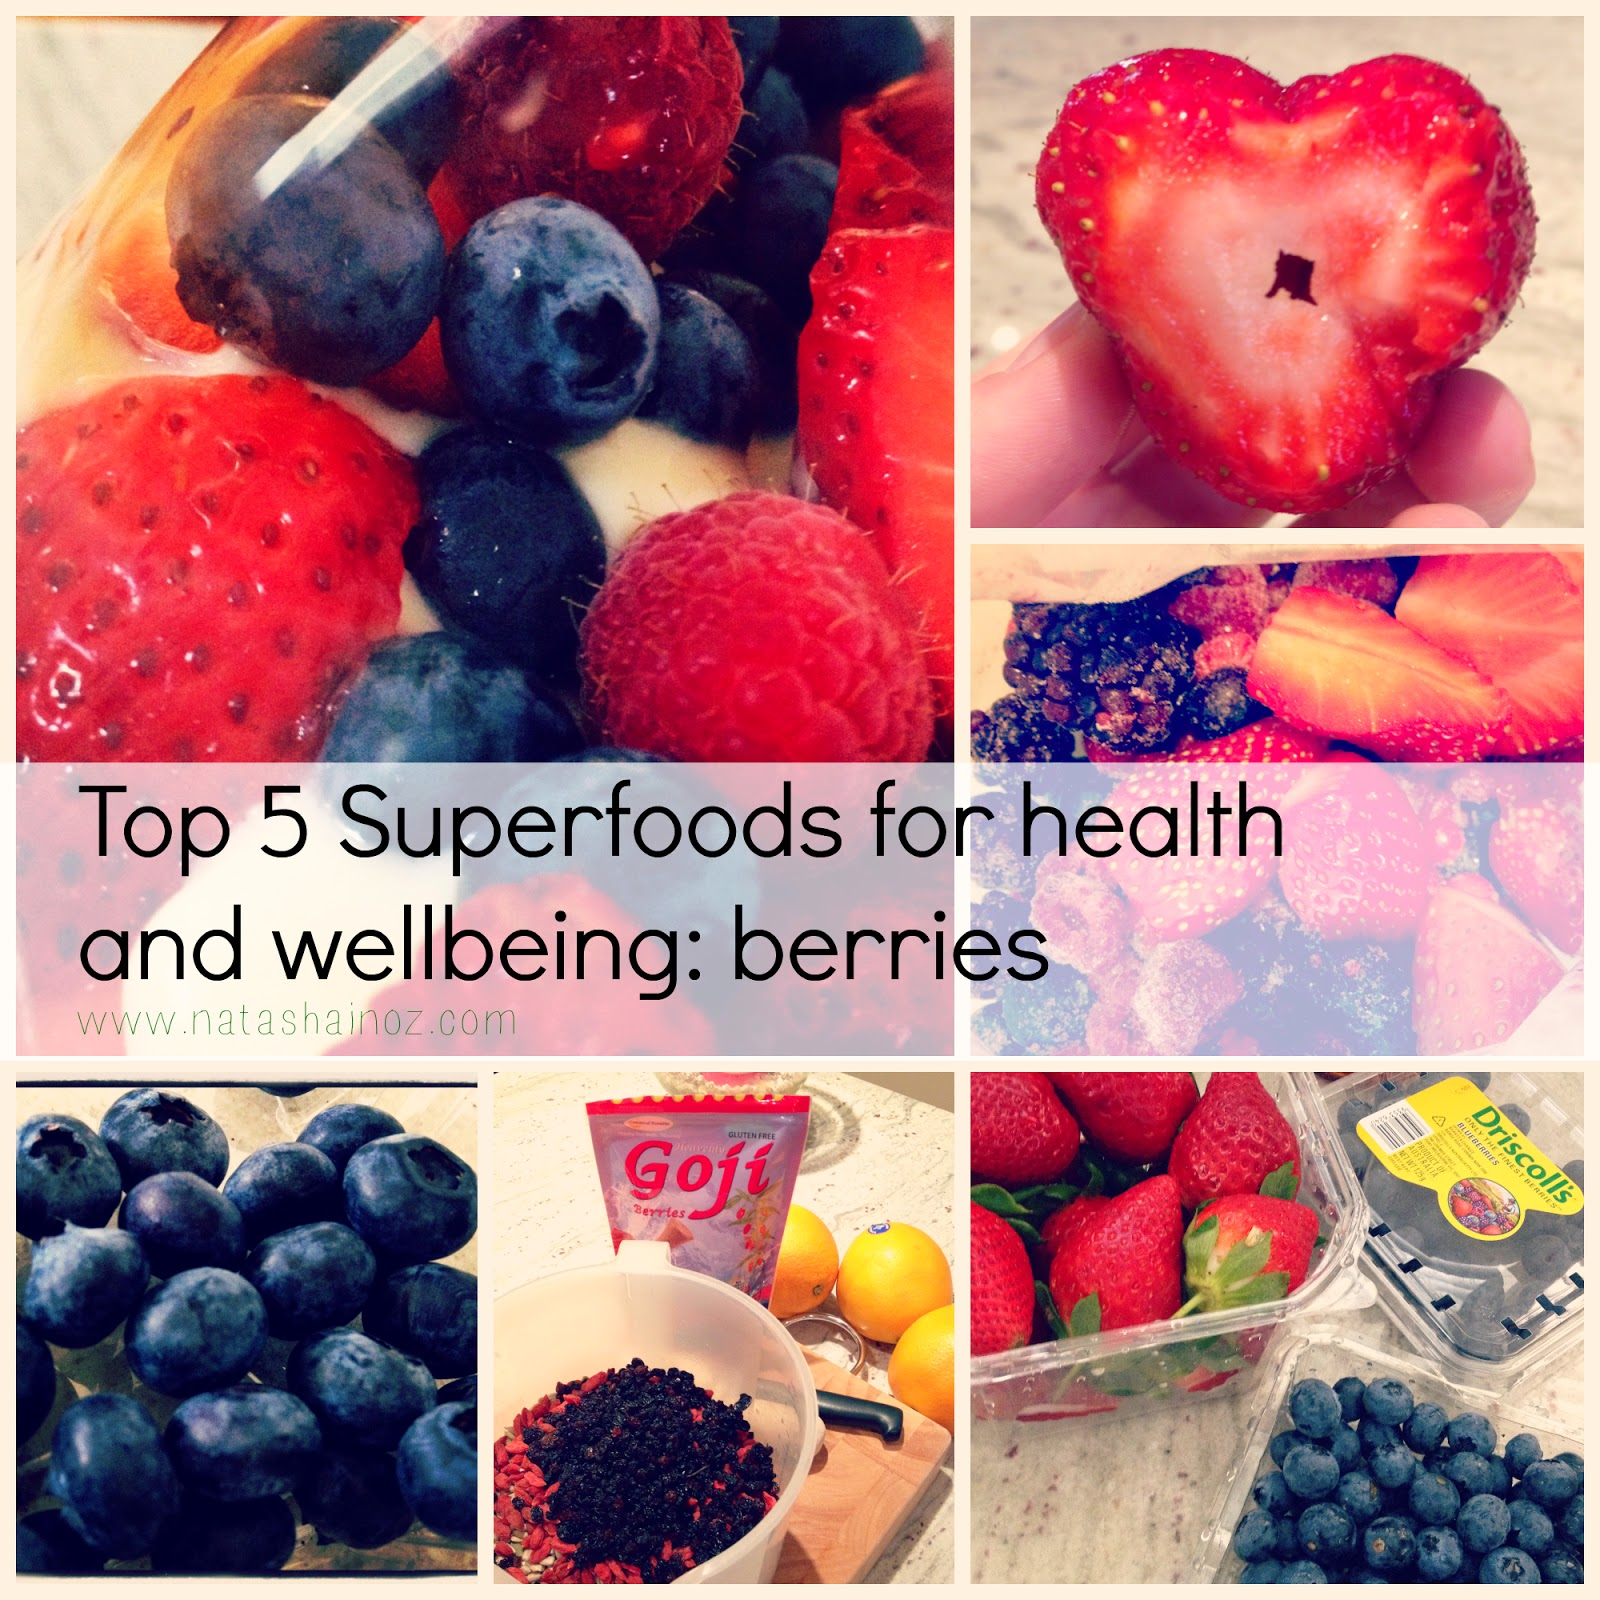 Top 5 Superfoods For Health and Wellbeing, Natasha in Oz, berries, blueberries, goji berries